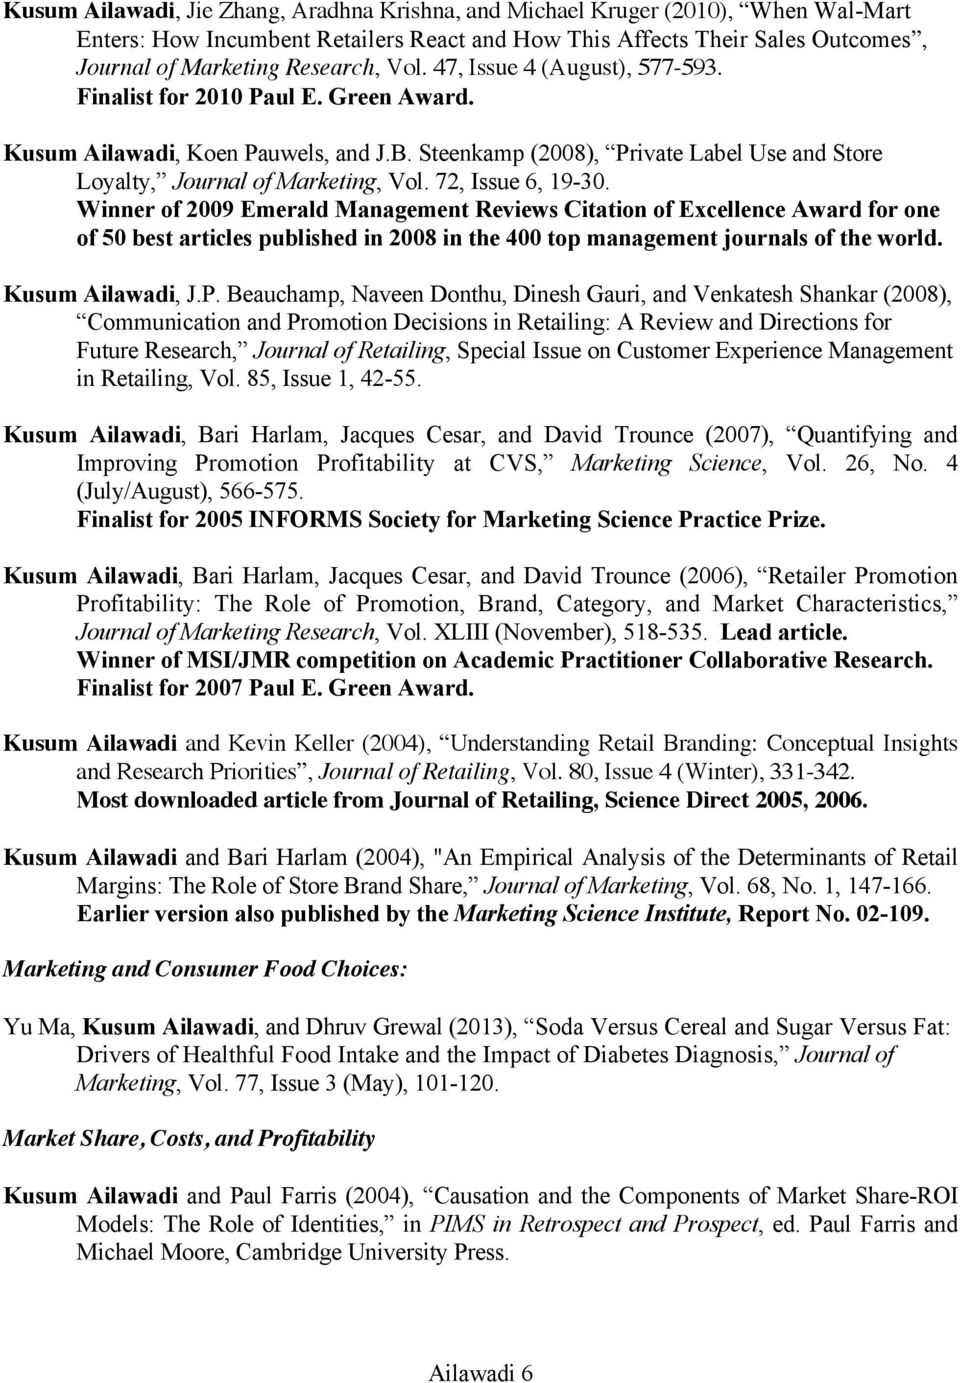 72, Issue 6, 19-30. Winner of 2009 Emerald Management Reviews Citation of Excellence Award for one of 50 best articles published in 2008 in the 400 top management journals of the world.